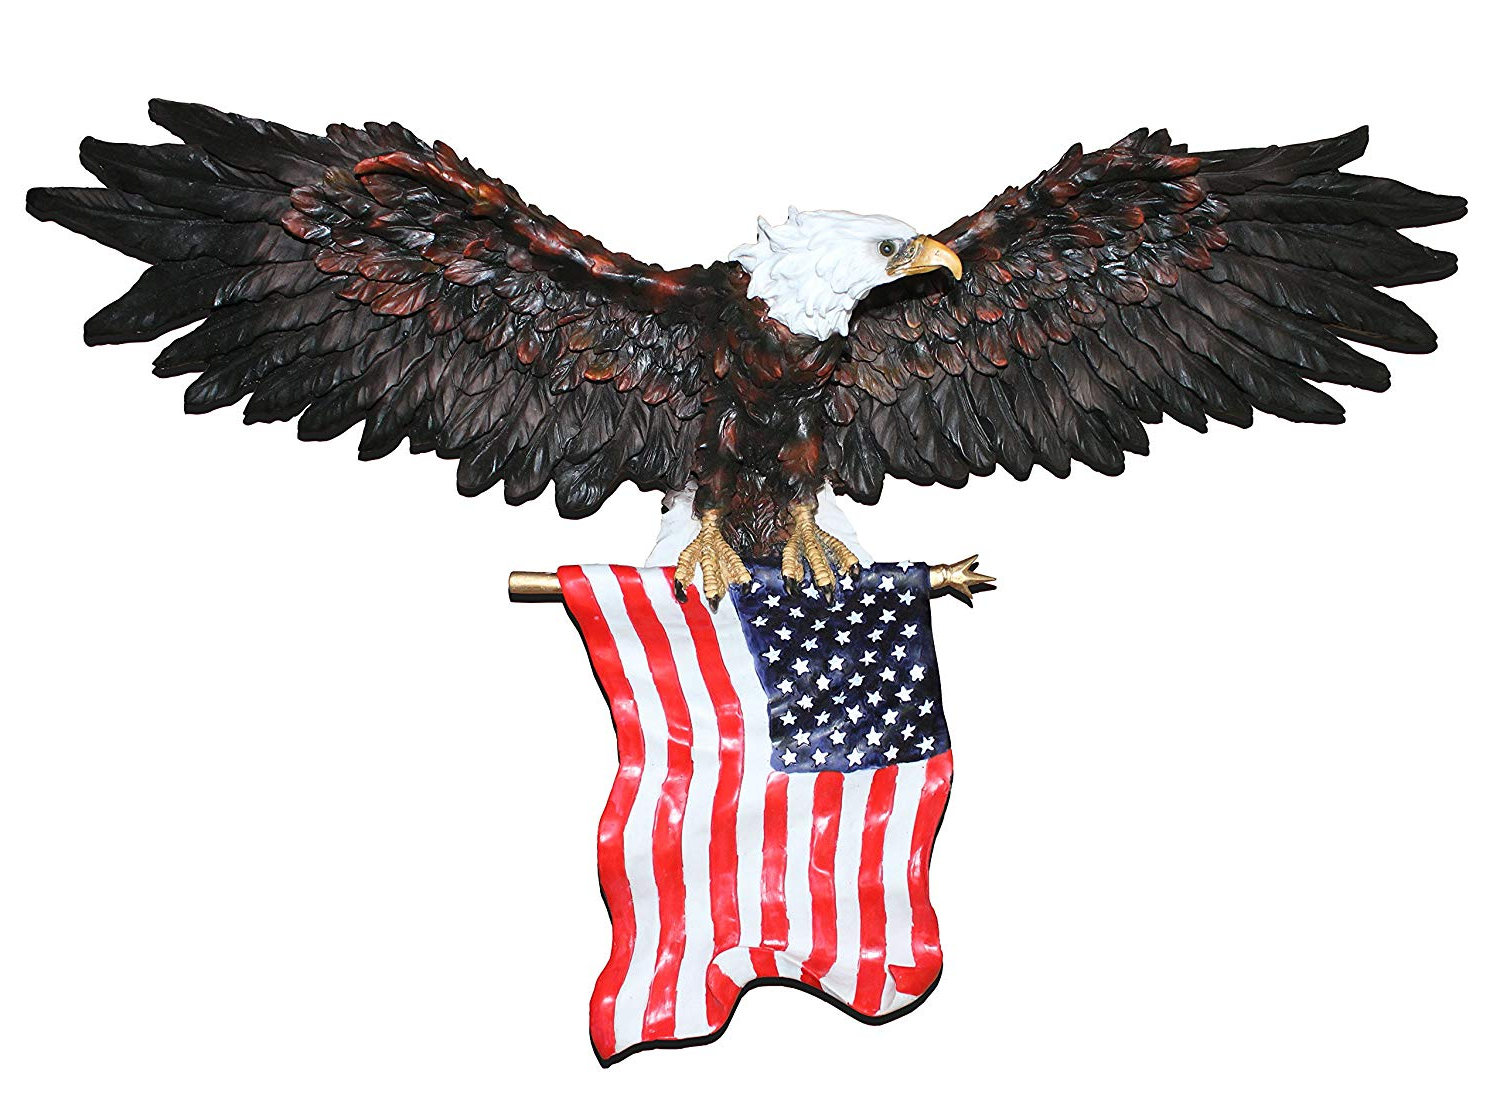 Latest Amazon: Comlzd 3D American Eagle Wall Sculptures, Patriotic Within American Pride 3D Wall Decor (View 2 of 20)